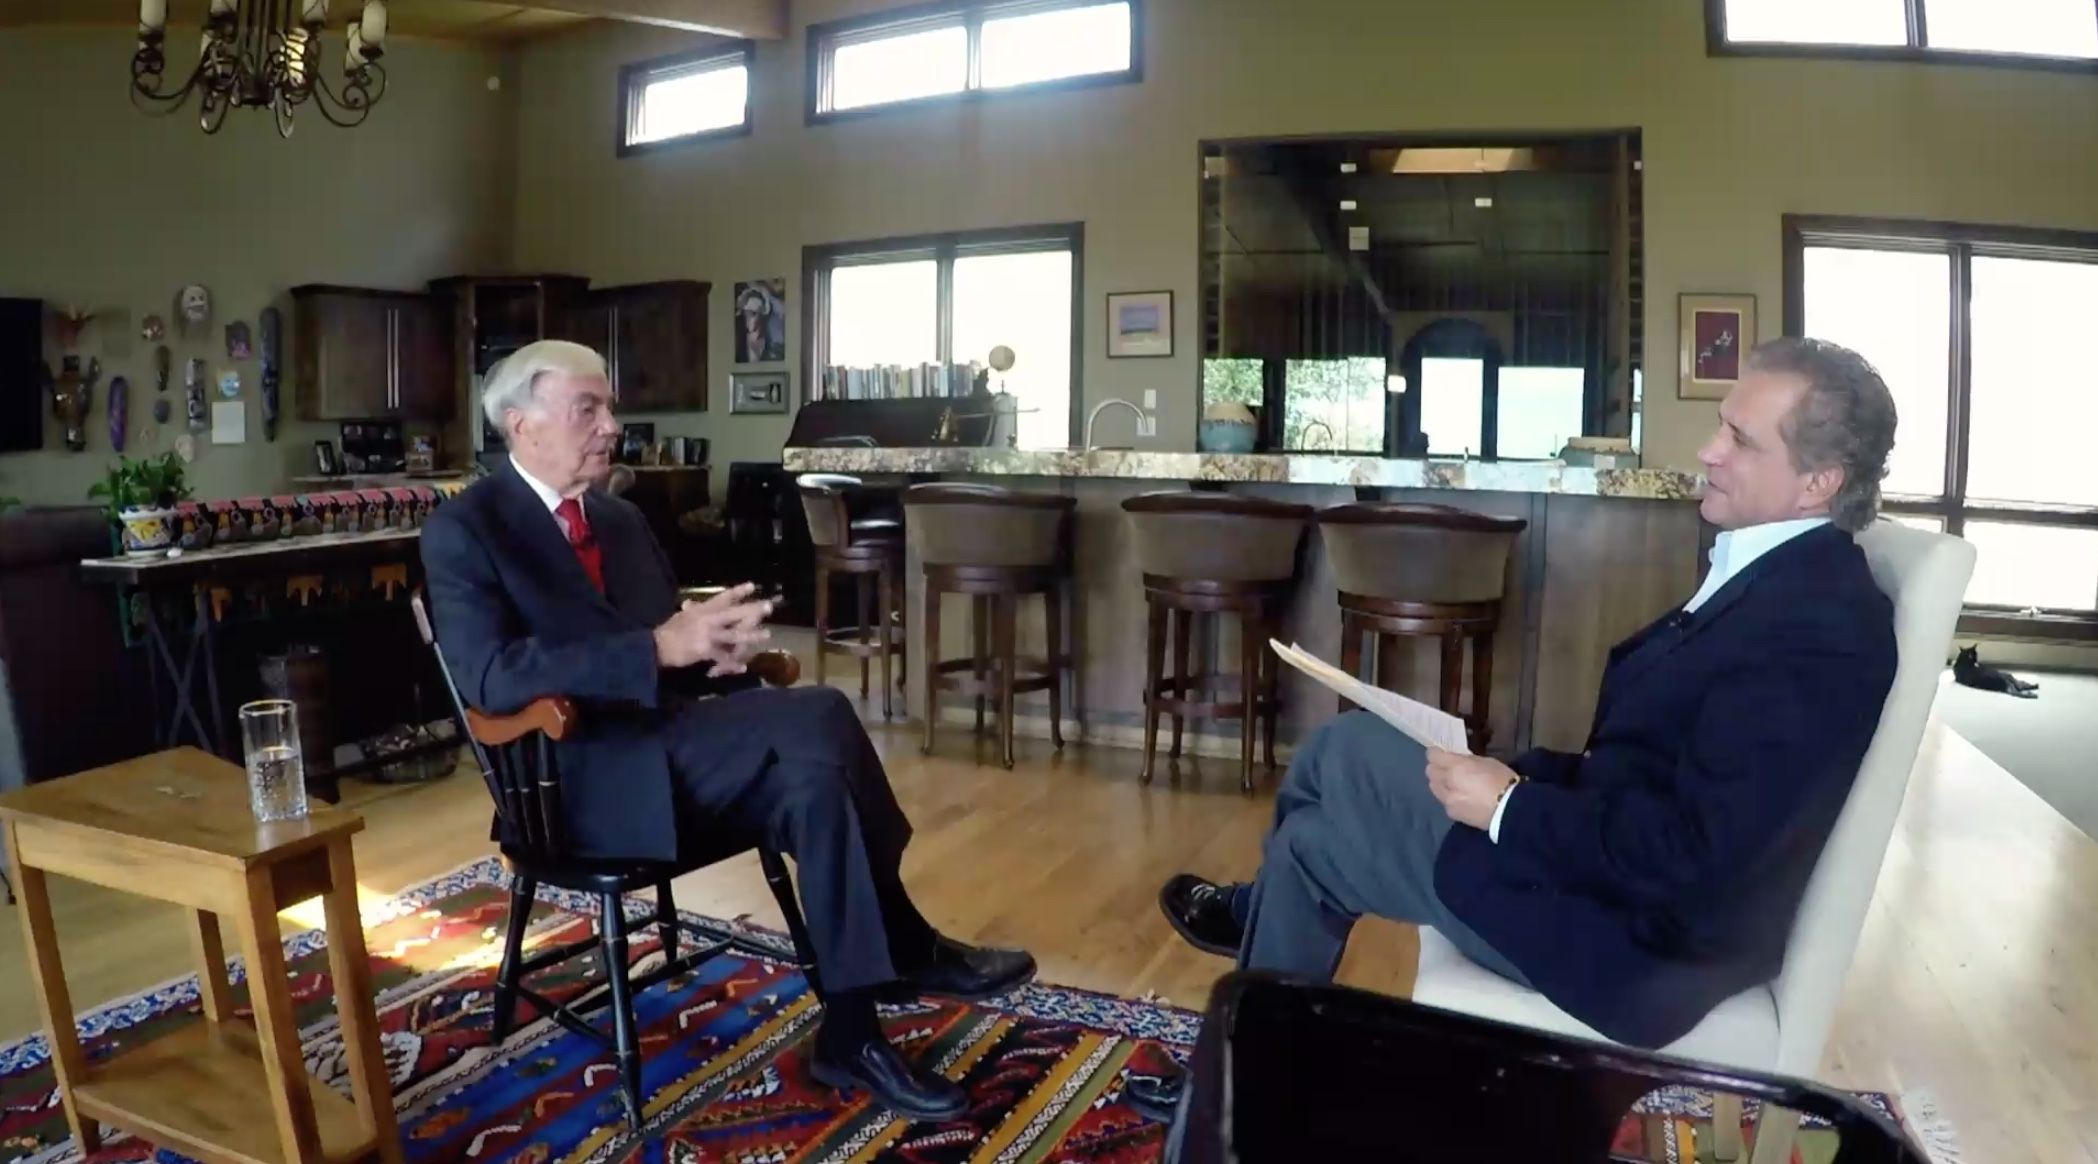 The 1960s Rediscovered, Sam Donaldson, former White House Correspondent, ABC News discusses 1960s politics with Tony Fama